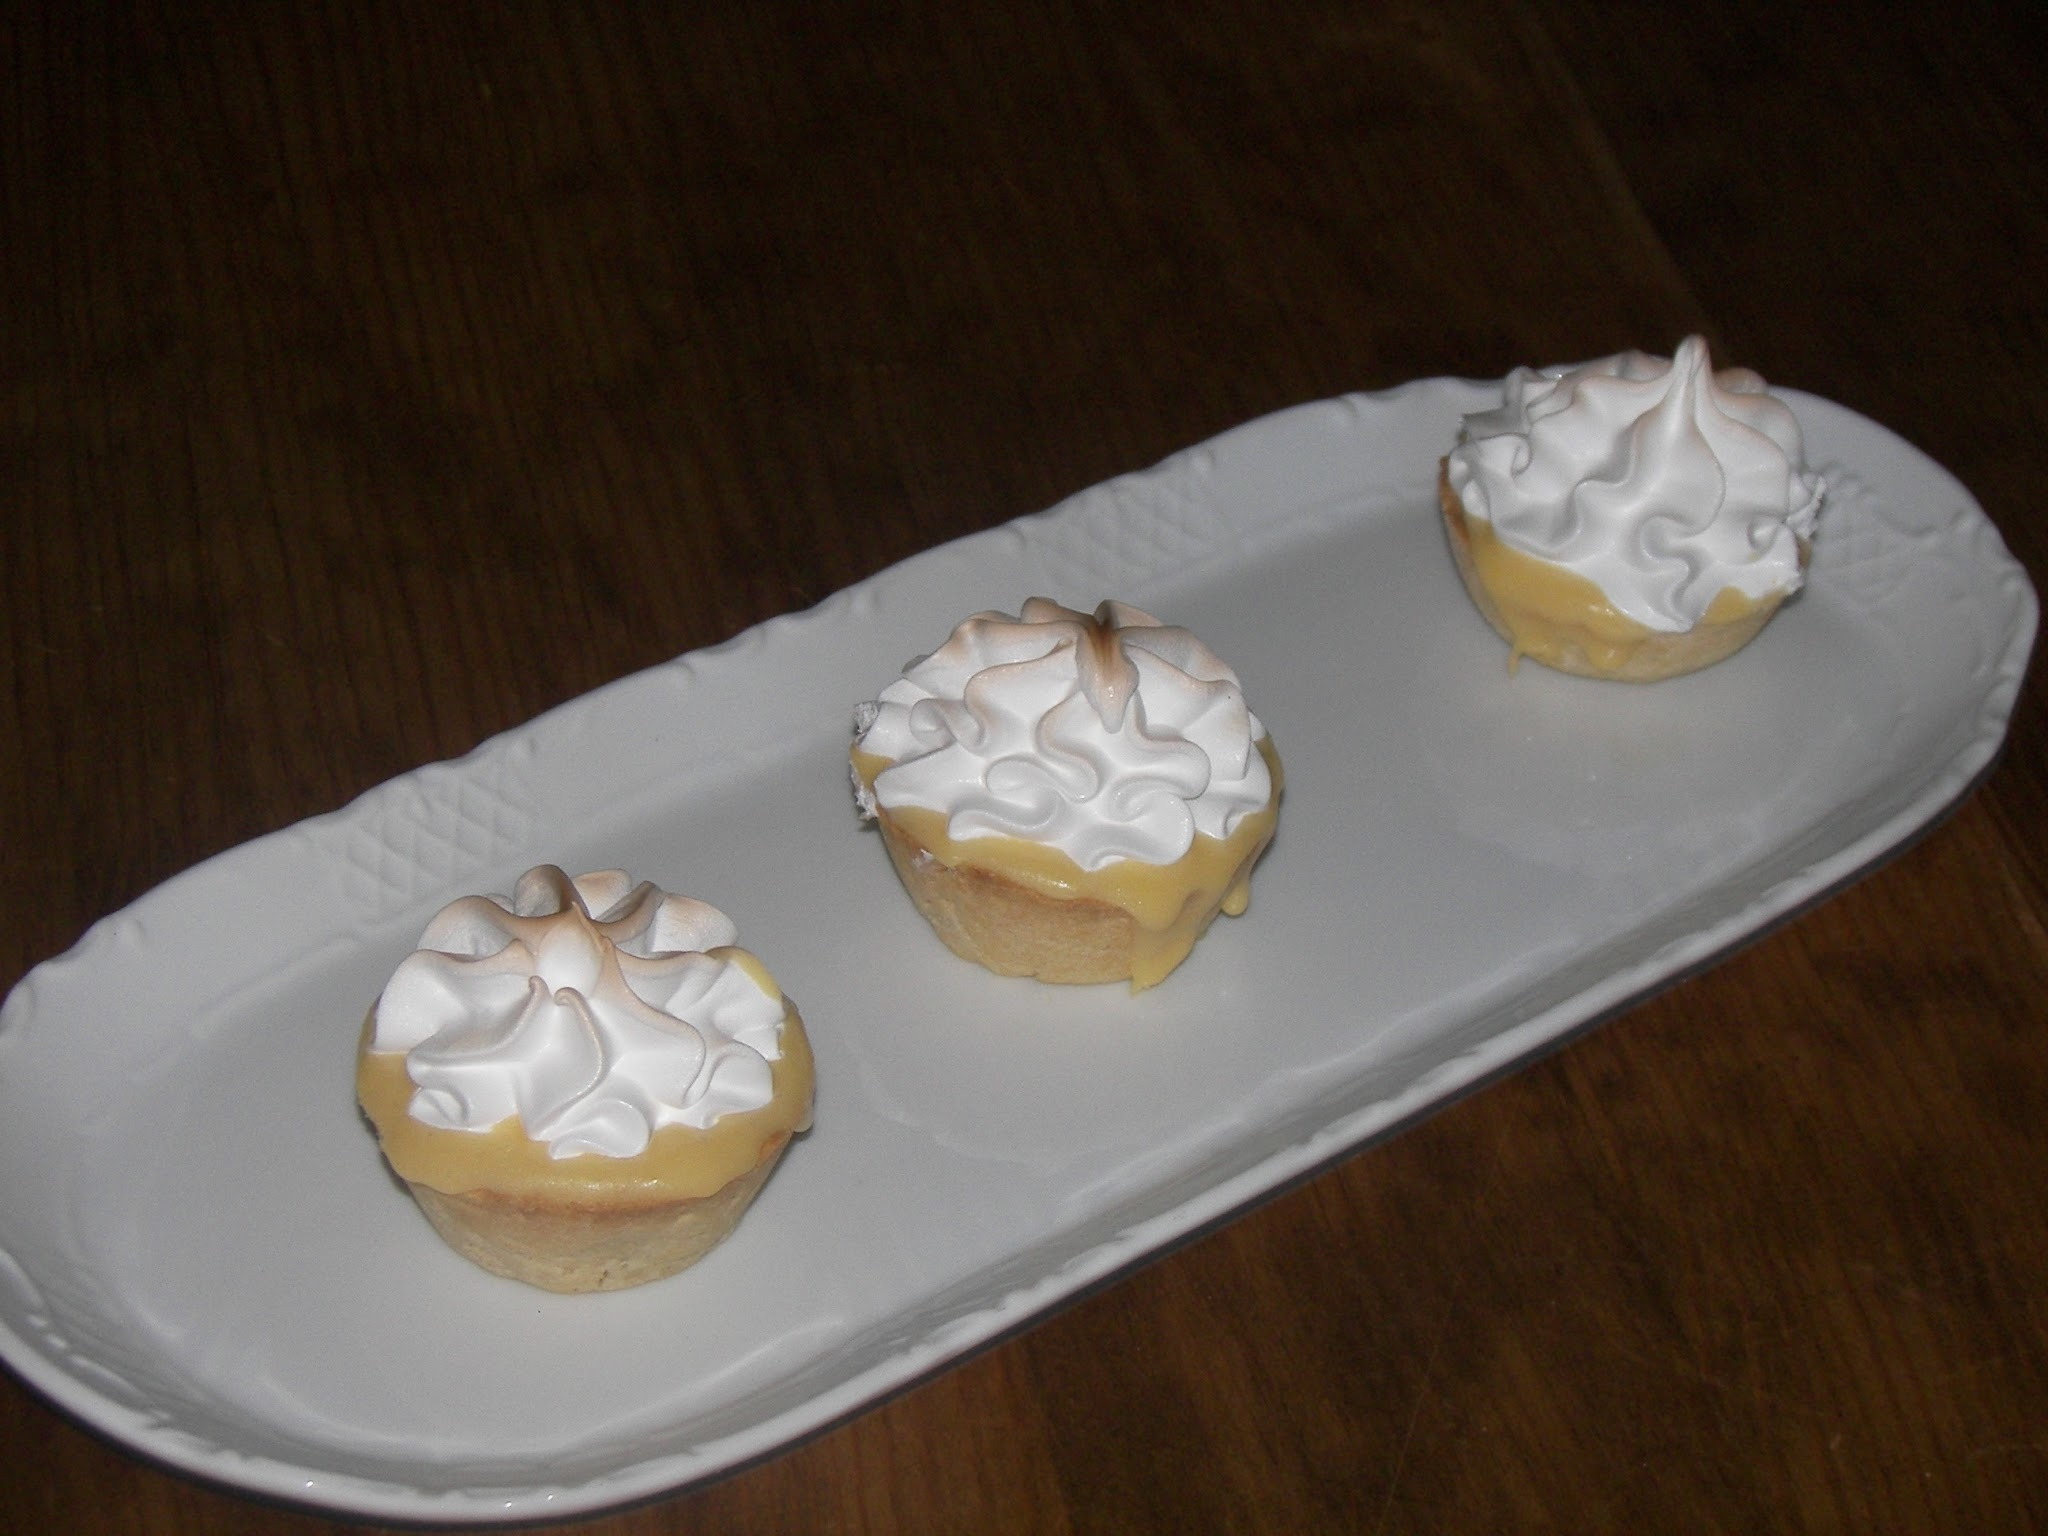 MINI TARTAS DE LIMÓN Ó LEMON PIE